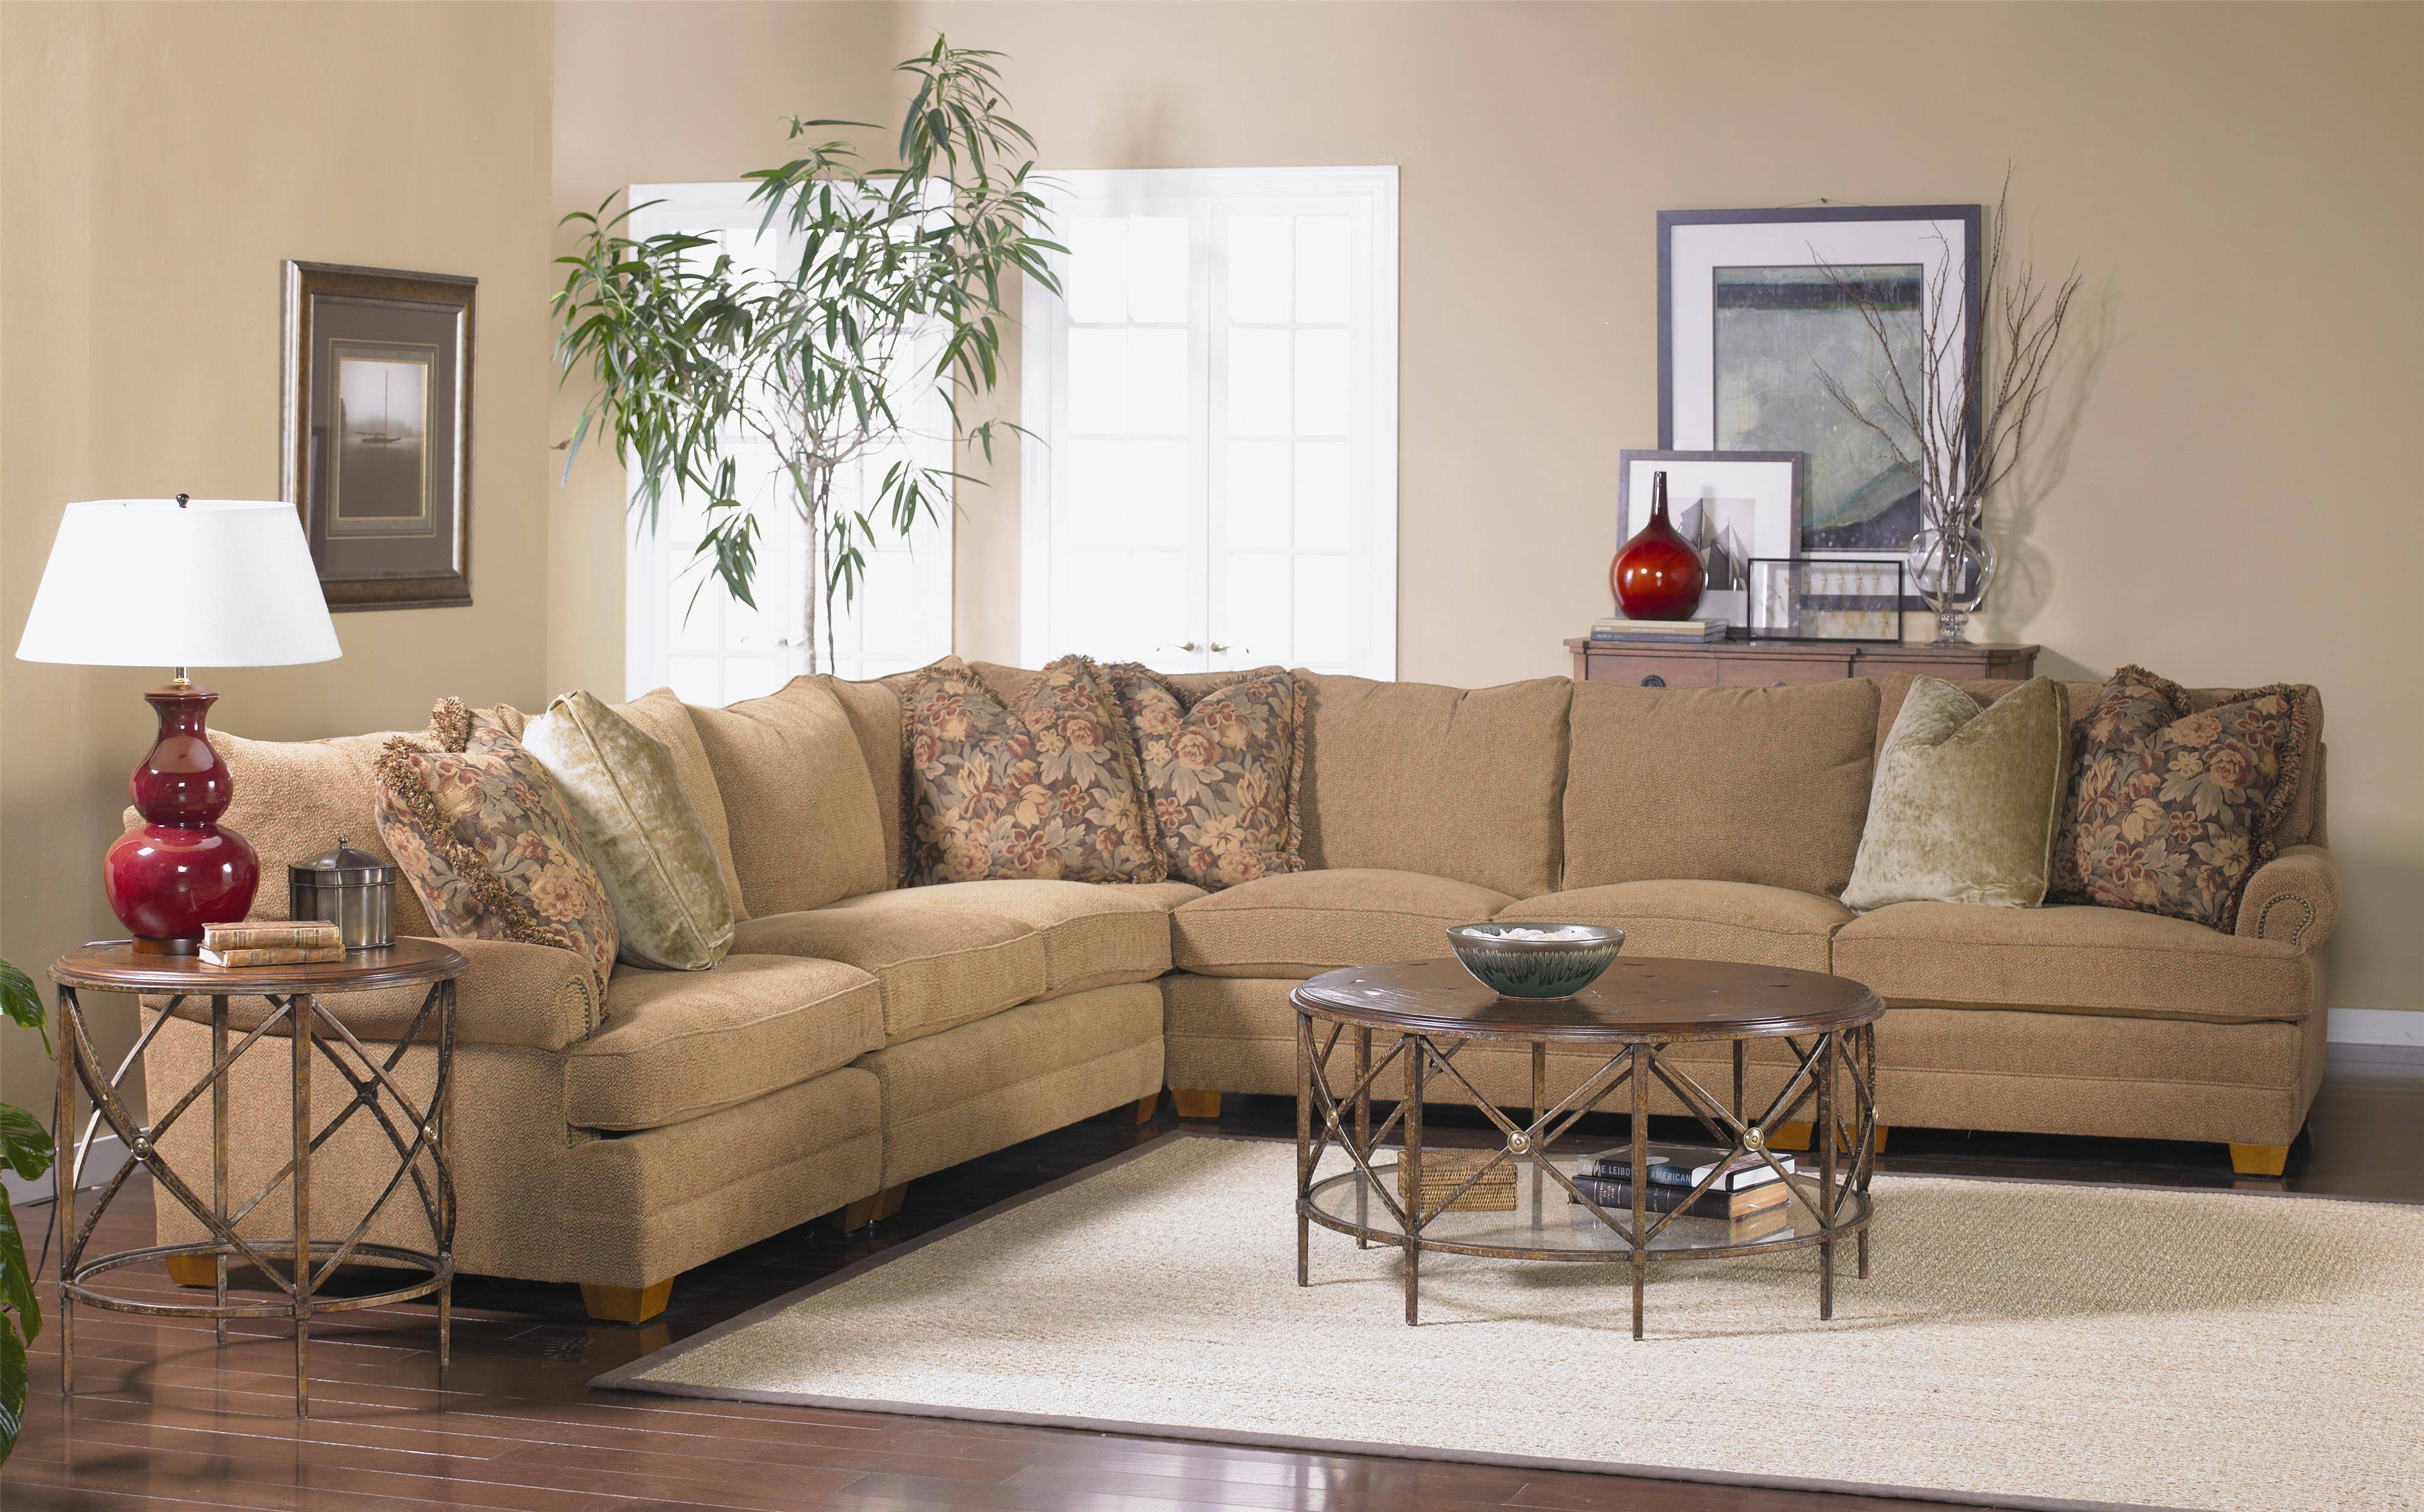 Sectional Sofa With Low Rolled Armssam Moore | Wolf And in Sam Moore Sofas (Image 12 of 15)